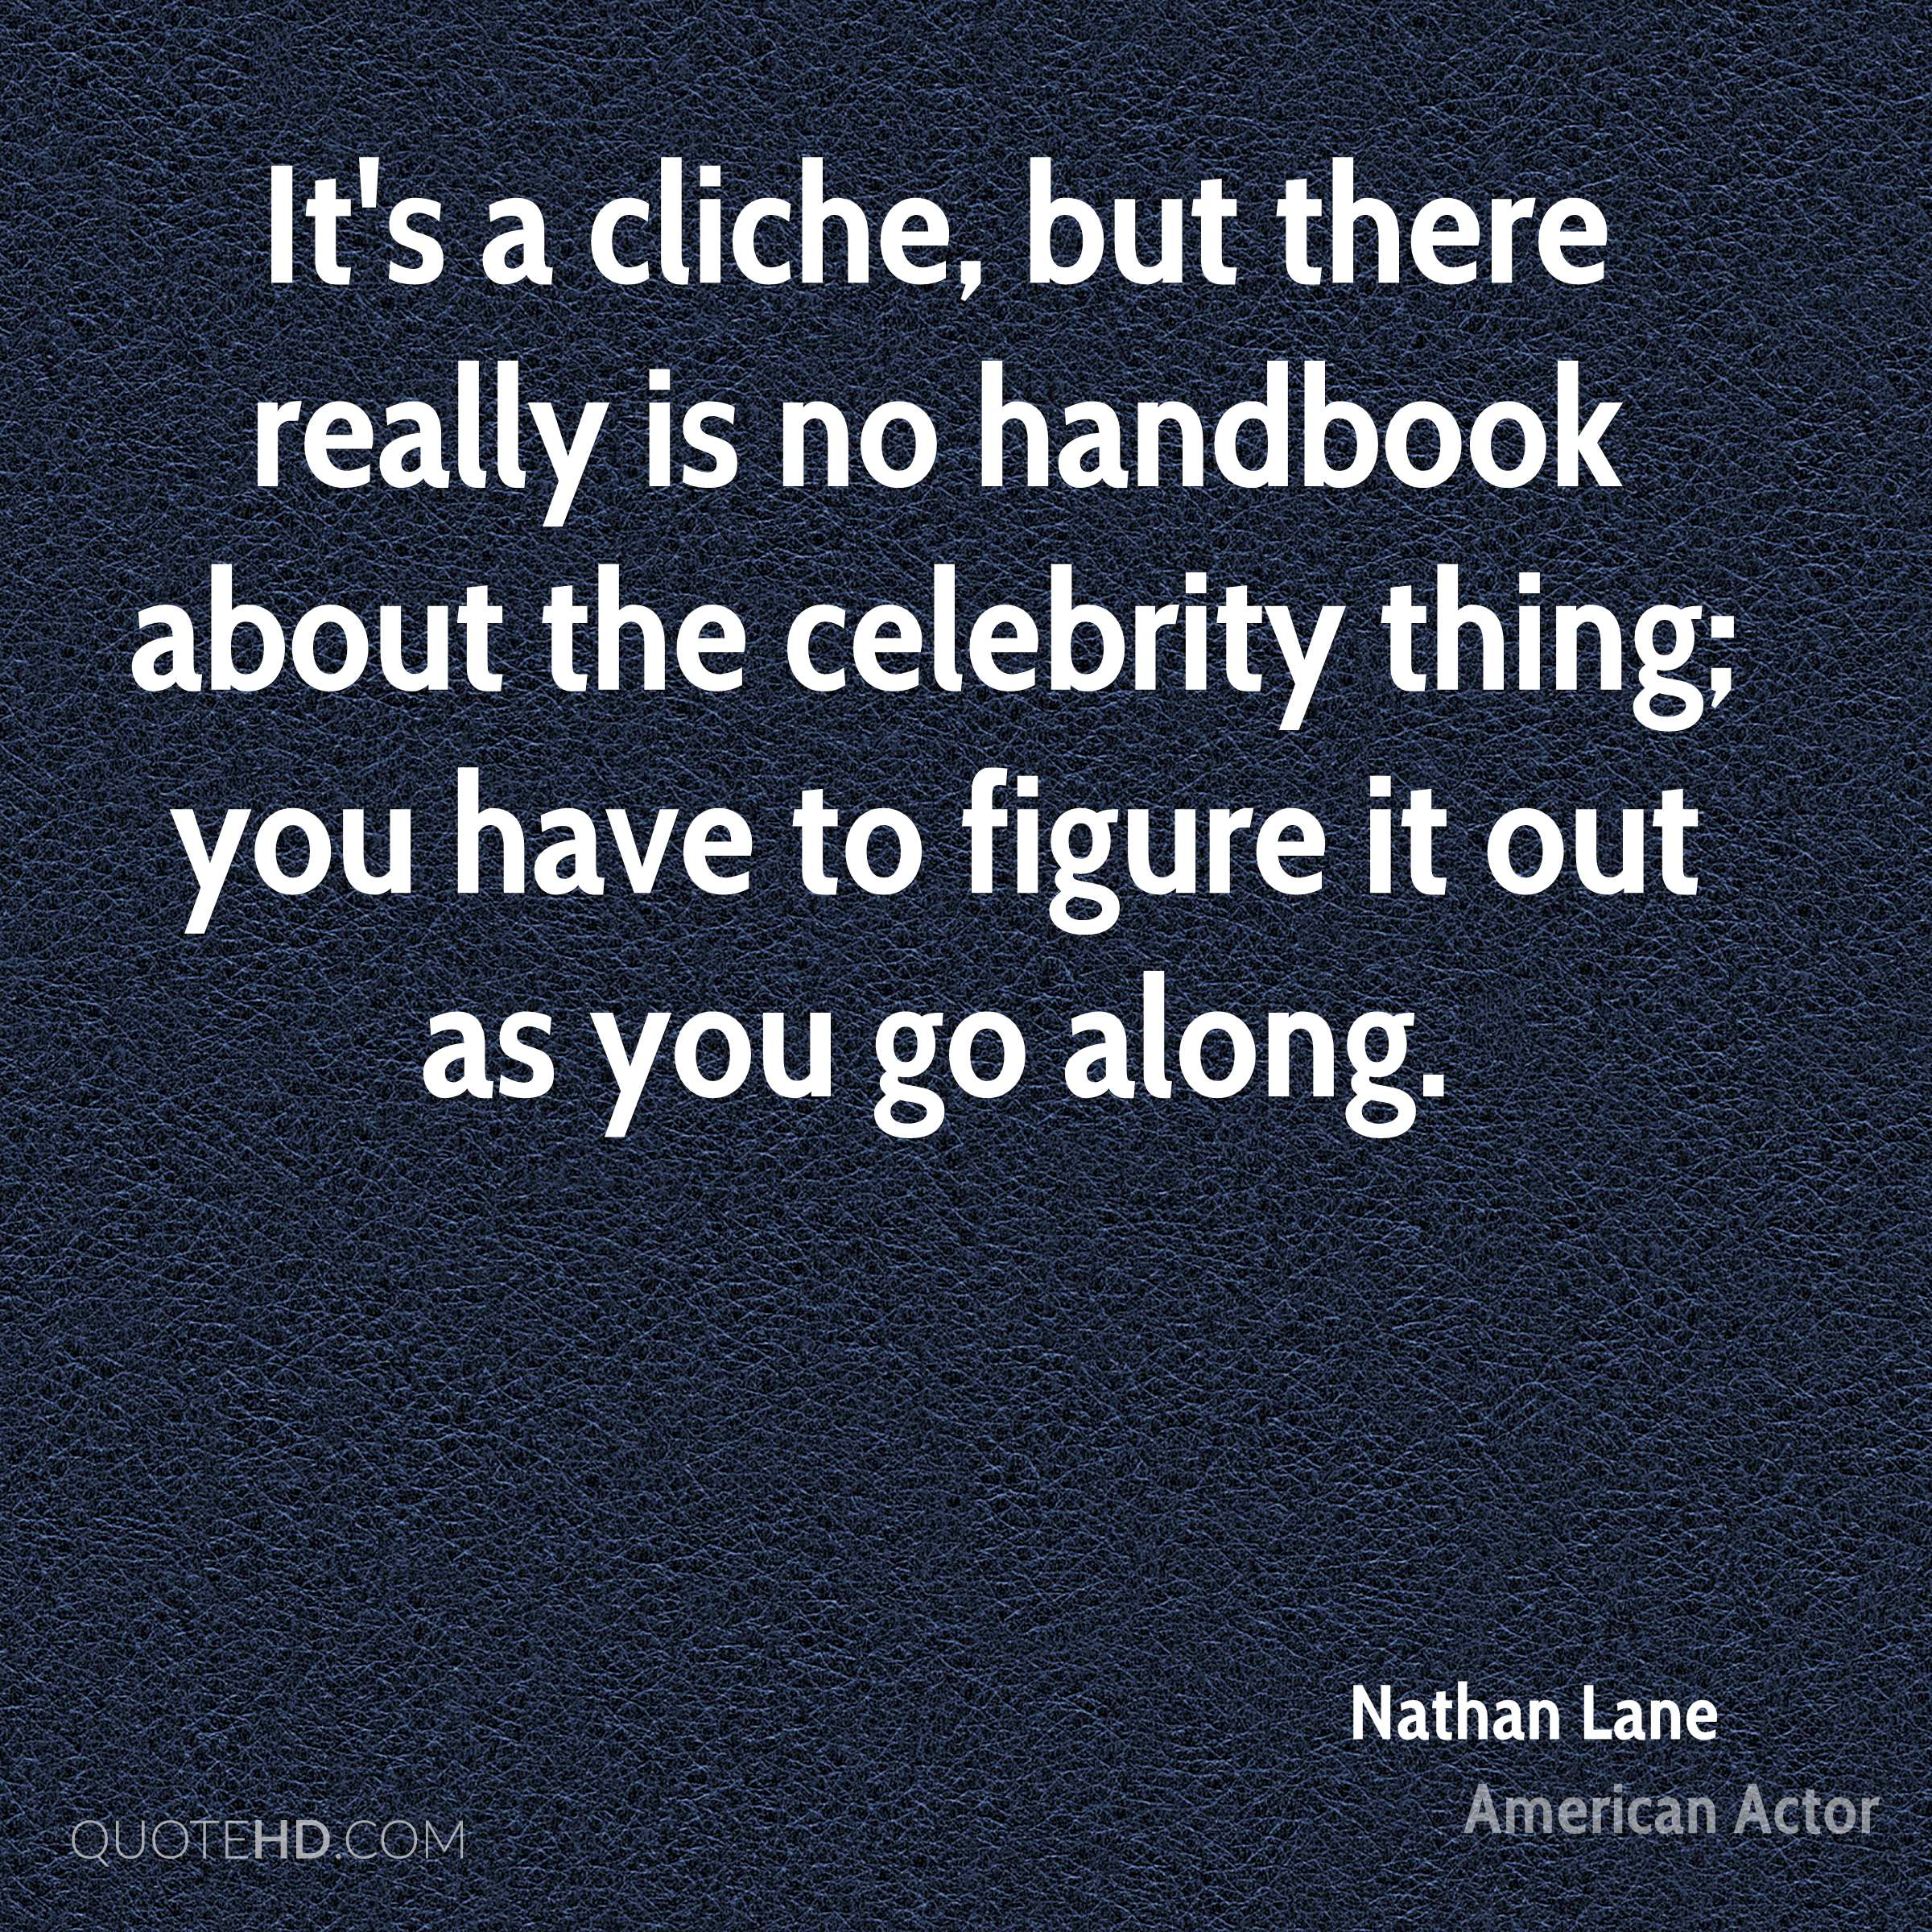 It's a cliche, but there really is no handbook about the celebrity thing; you have to figure it out as you go along.